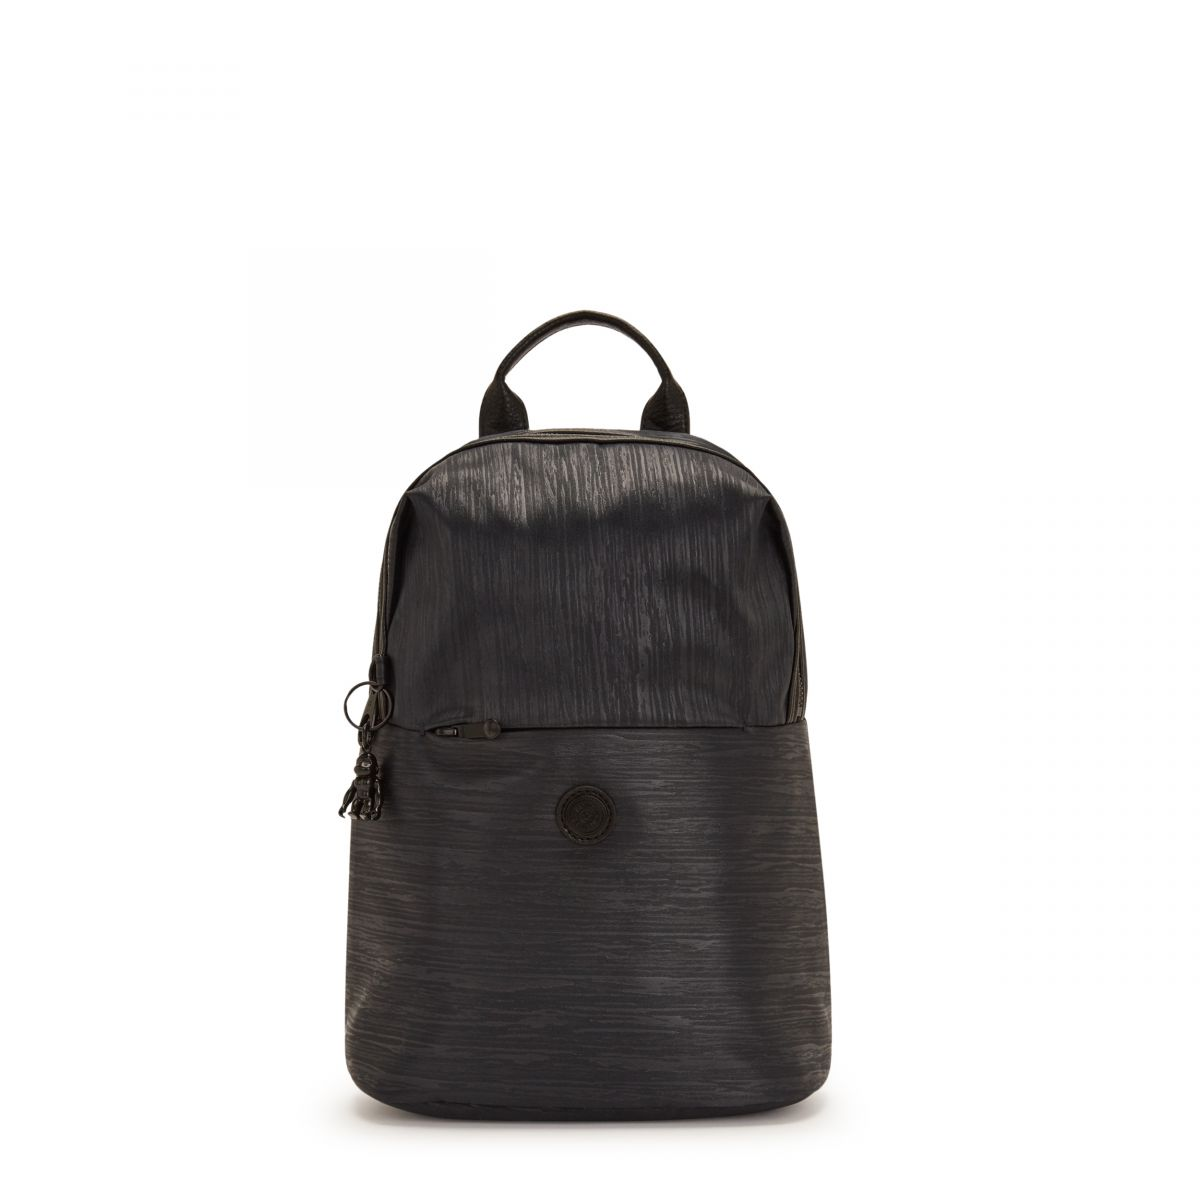 DAYANA BACKPACKS by Kipling - Front view